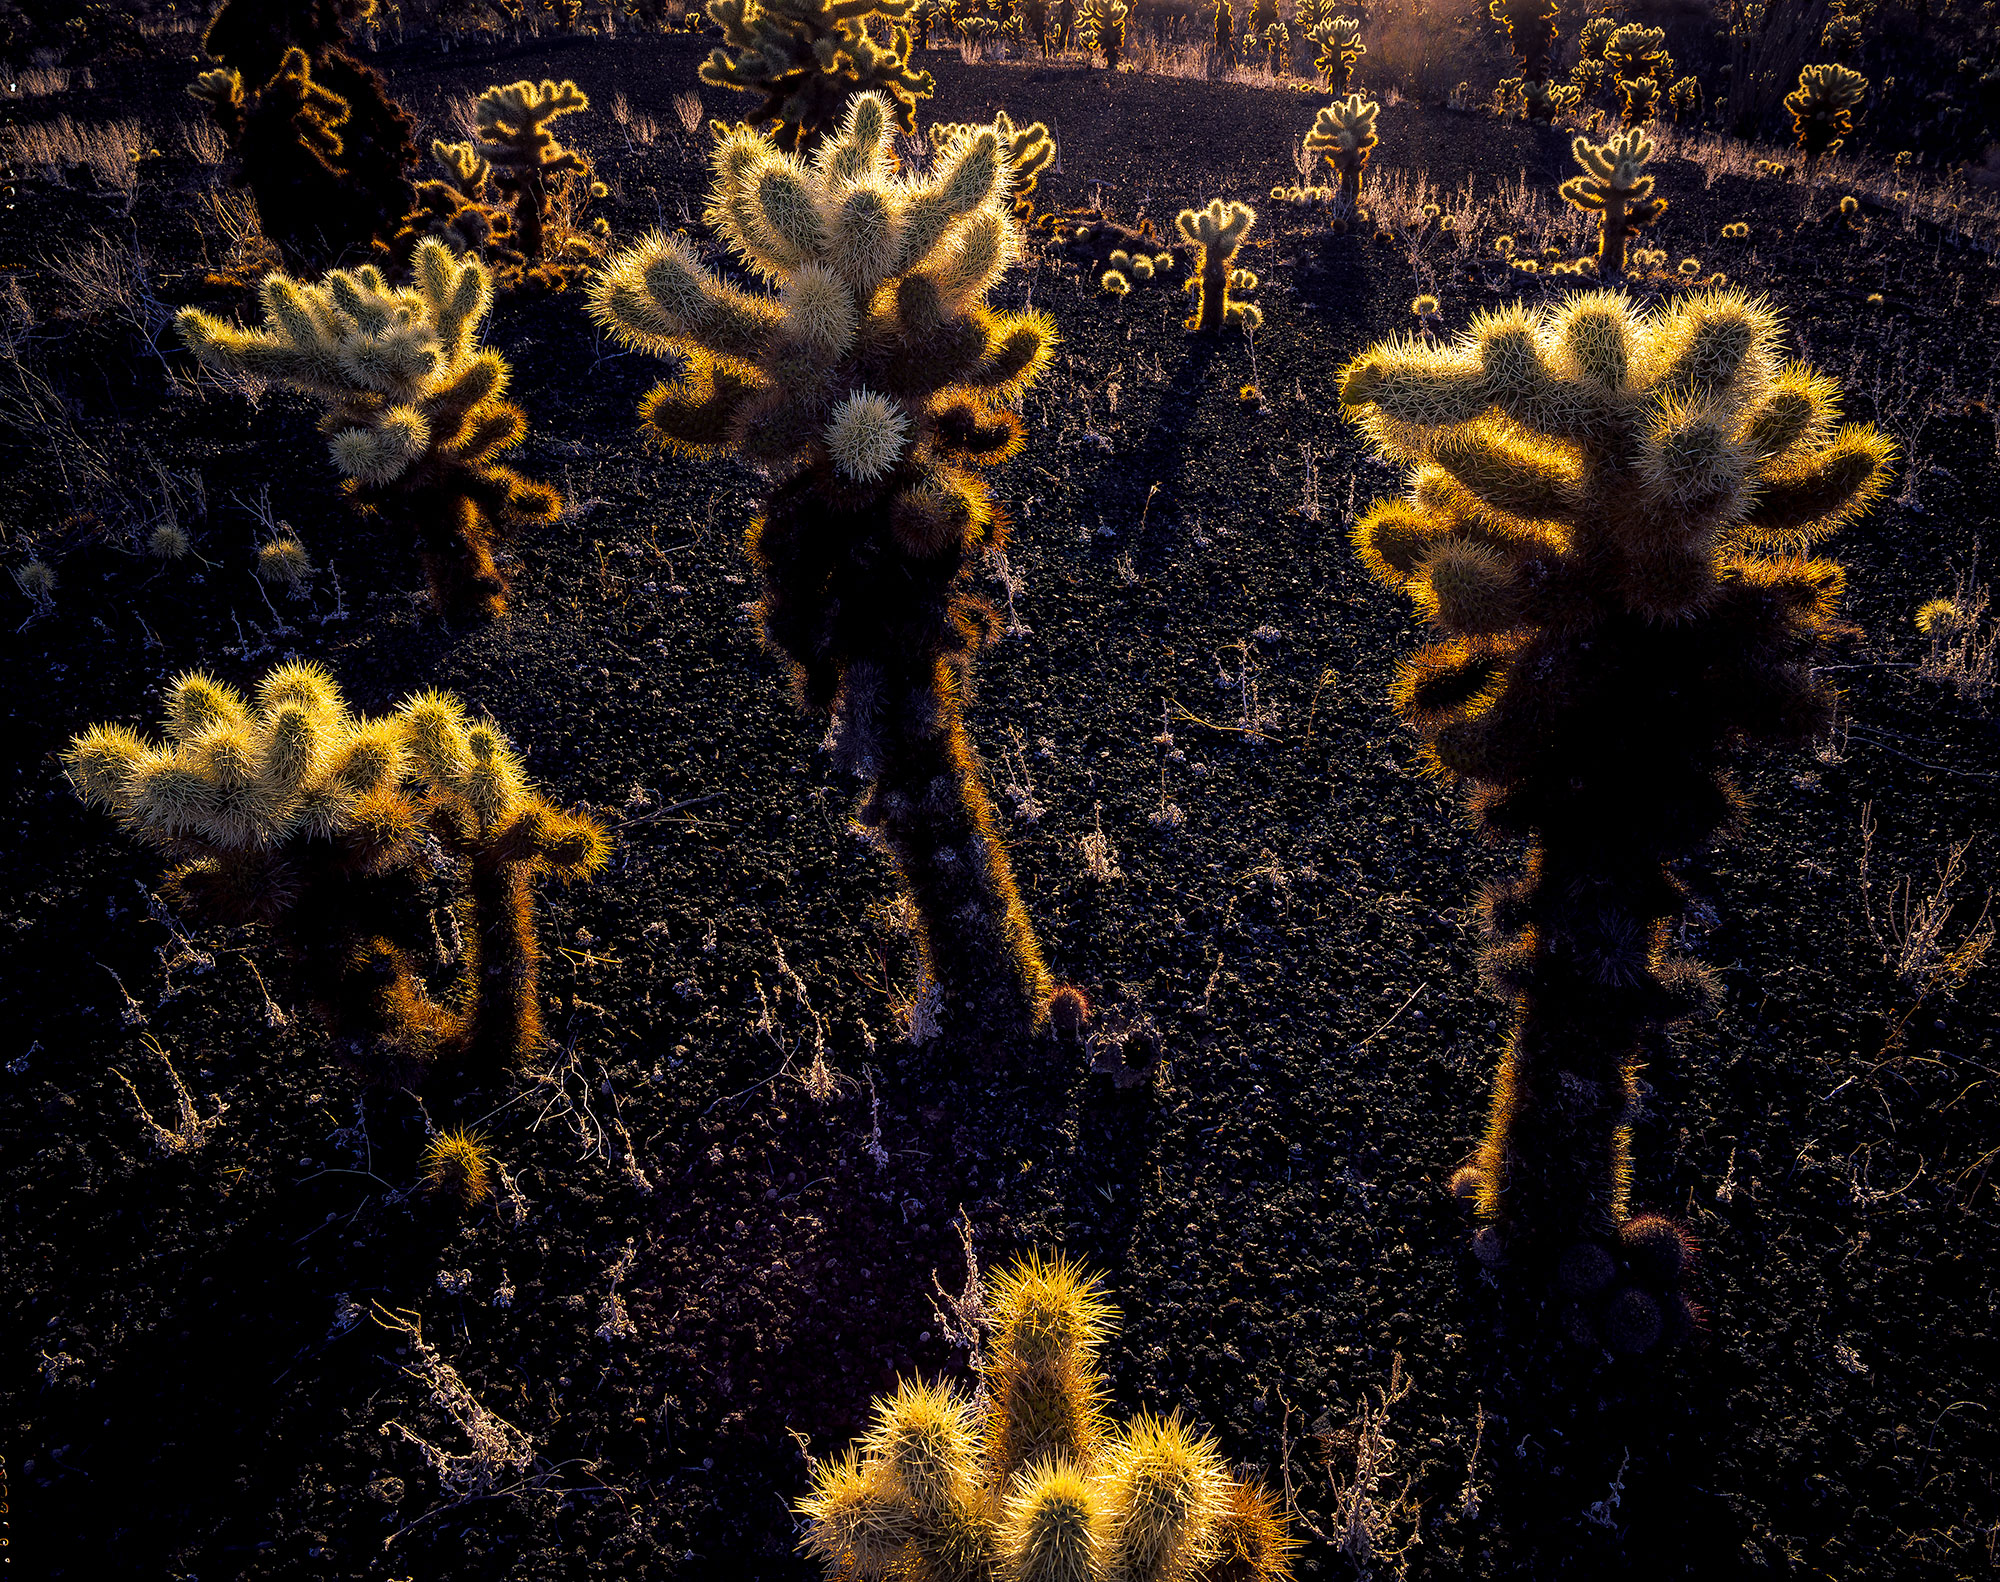 Teddy Bear Cactus in the Pinacate Desert